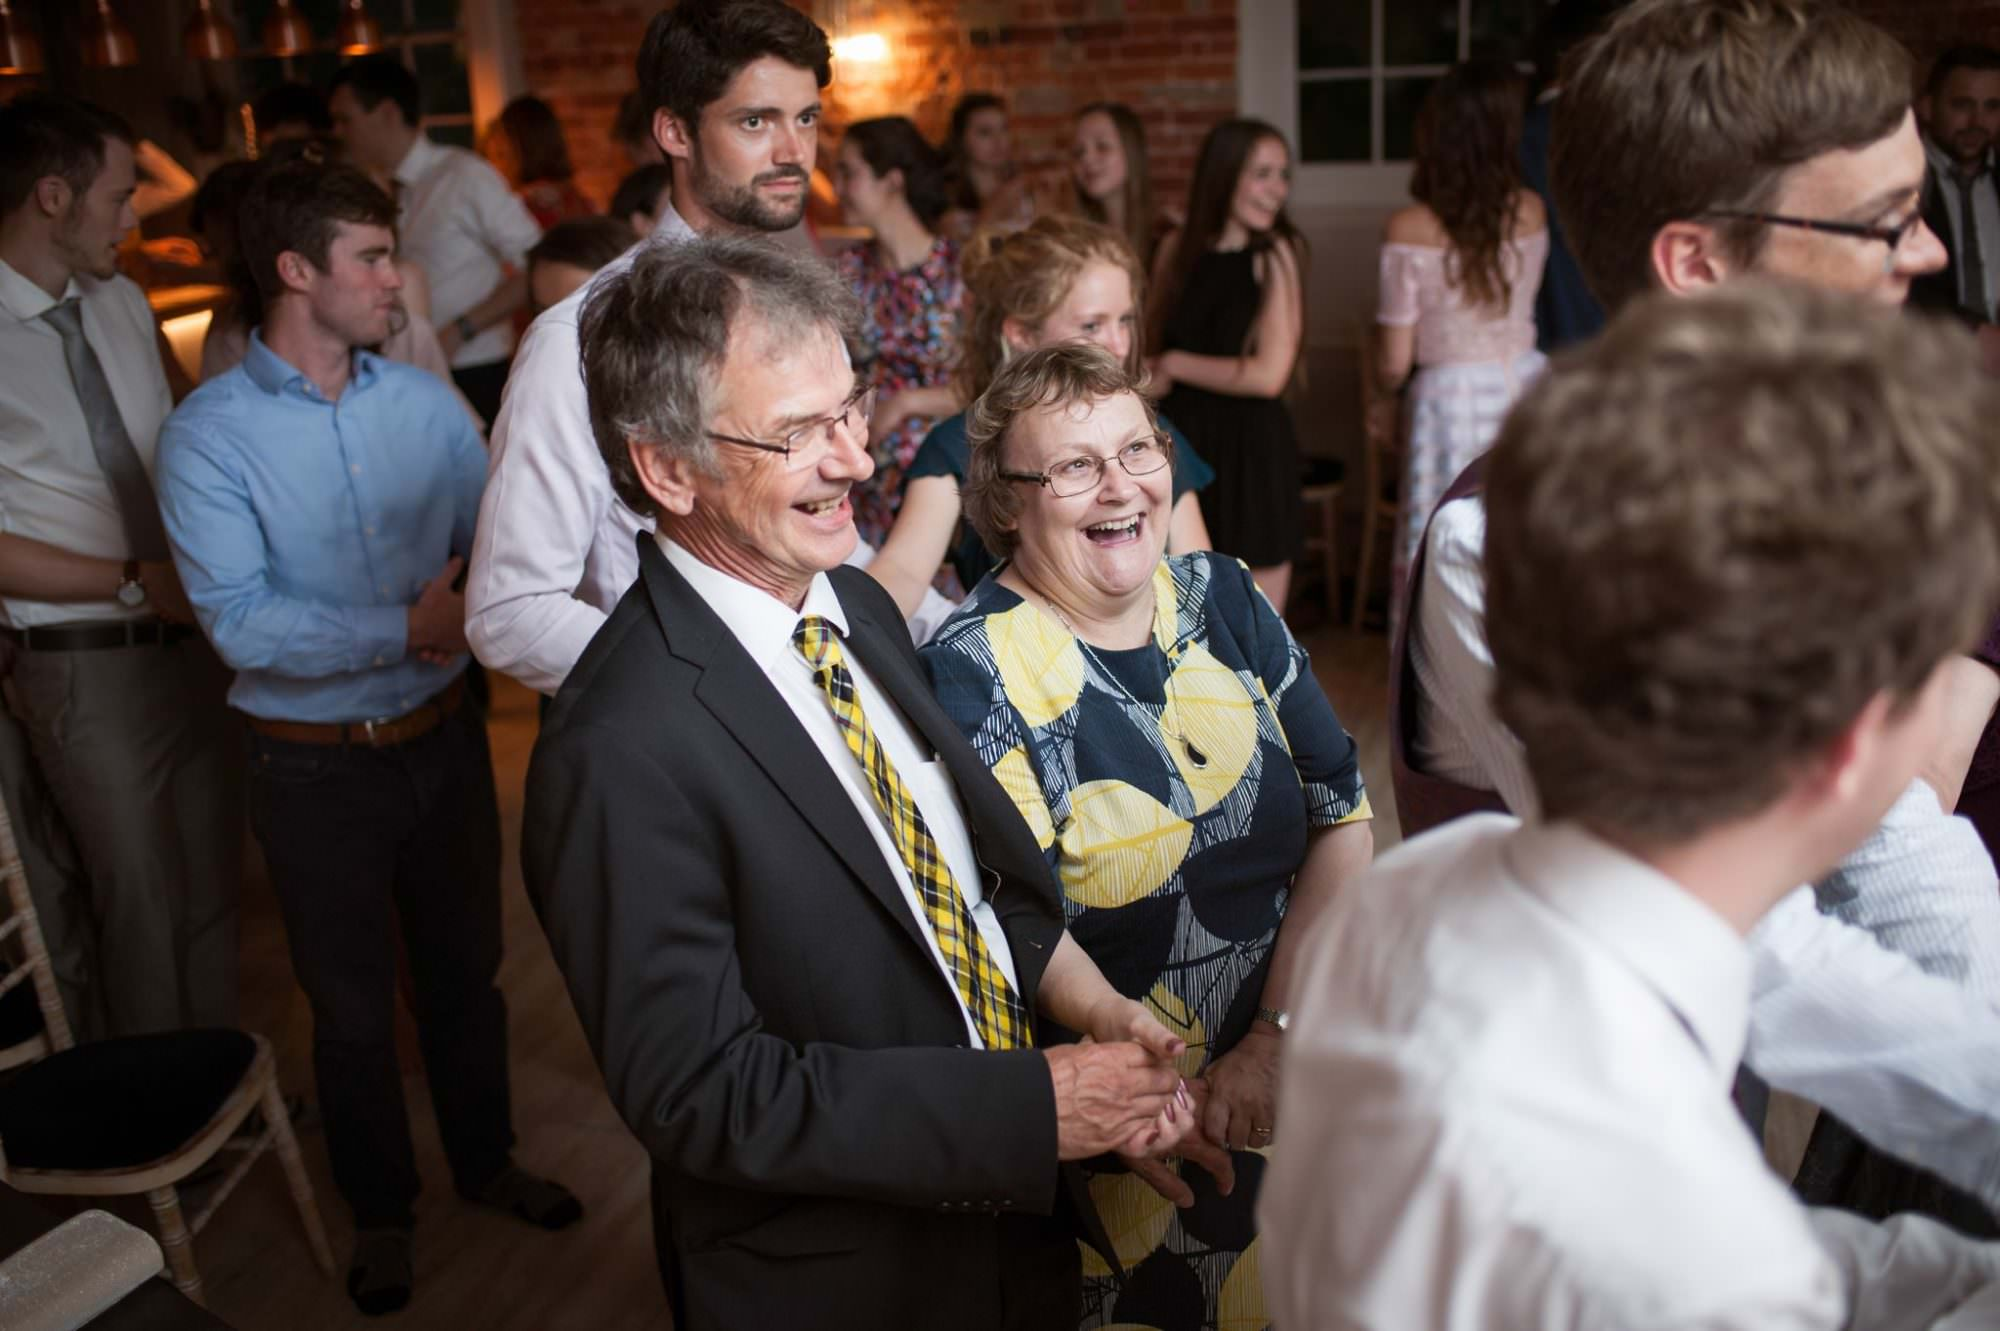 Dorset barn dance for wedding day